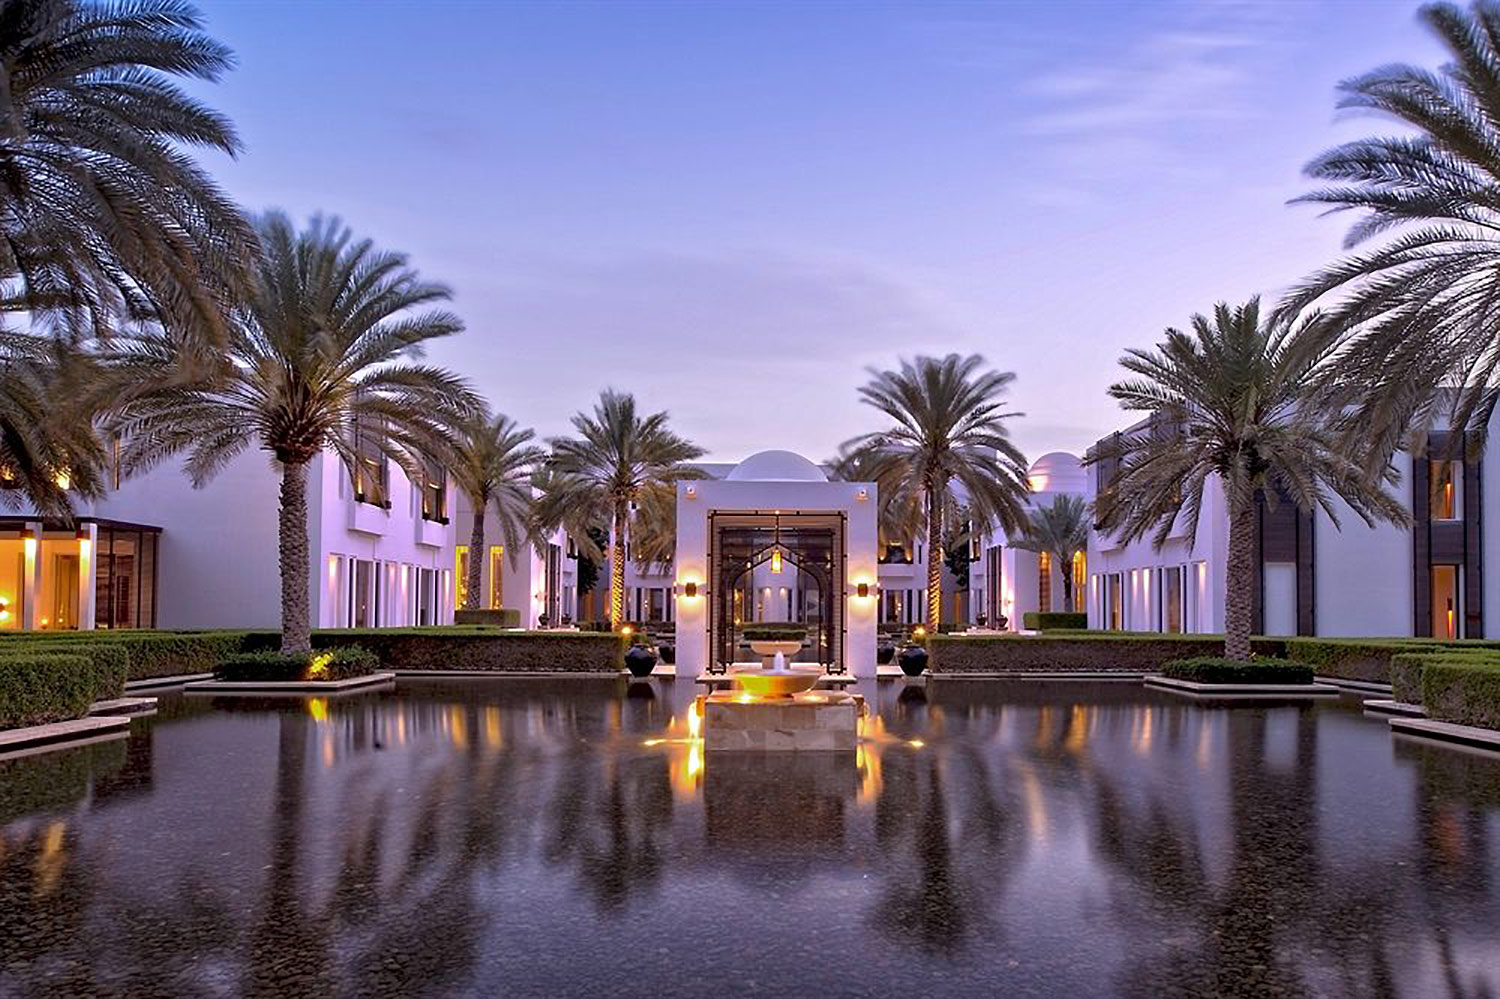 The Chedi Muscat - Muscat, Oman